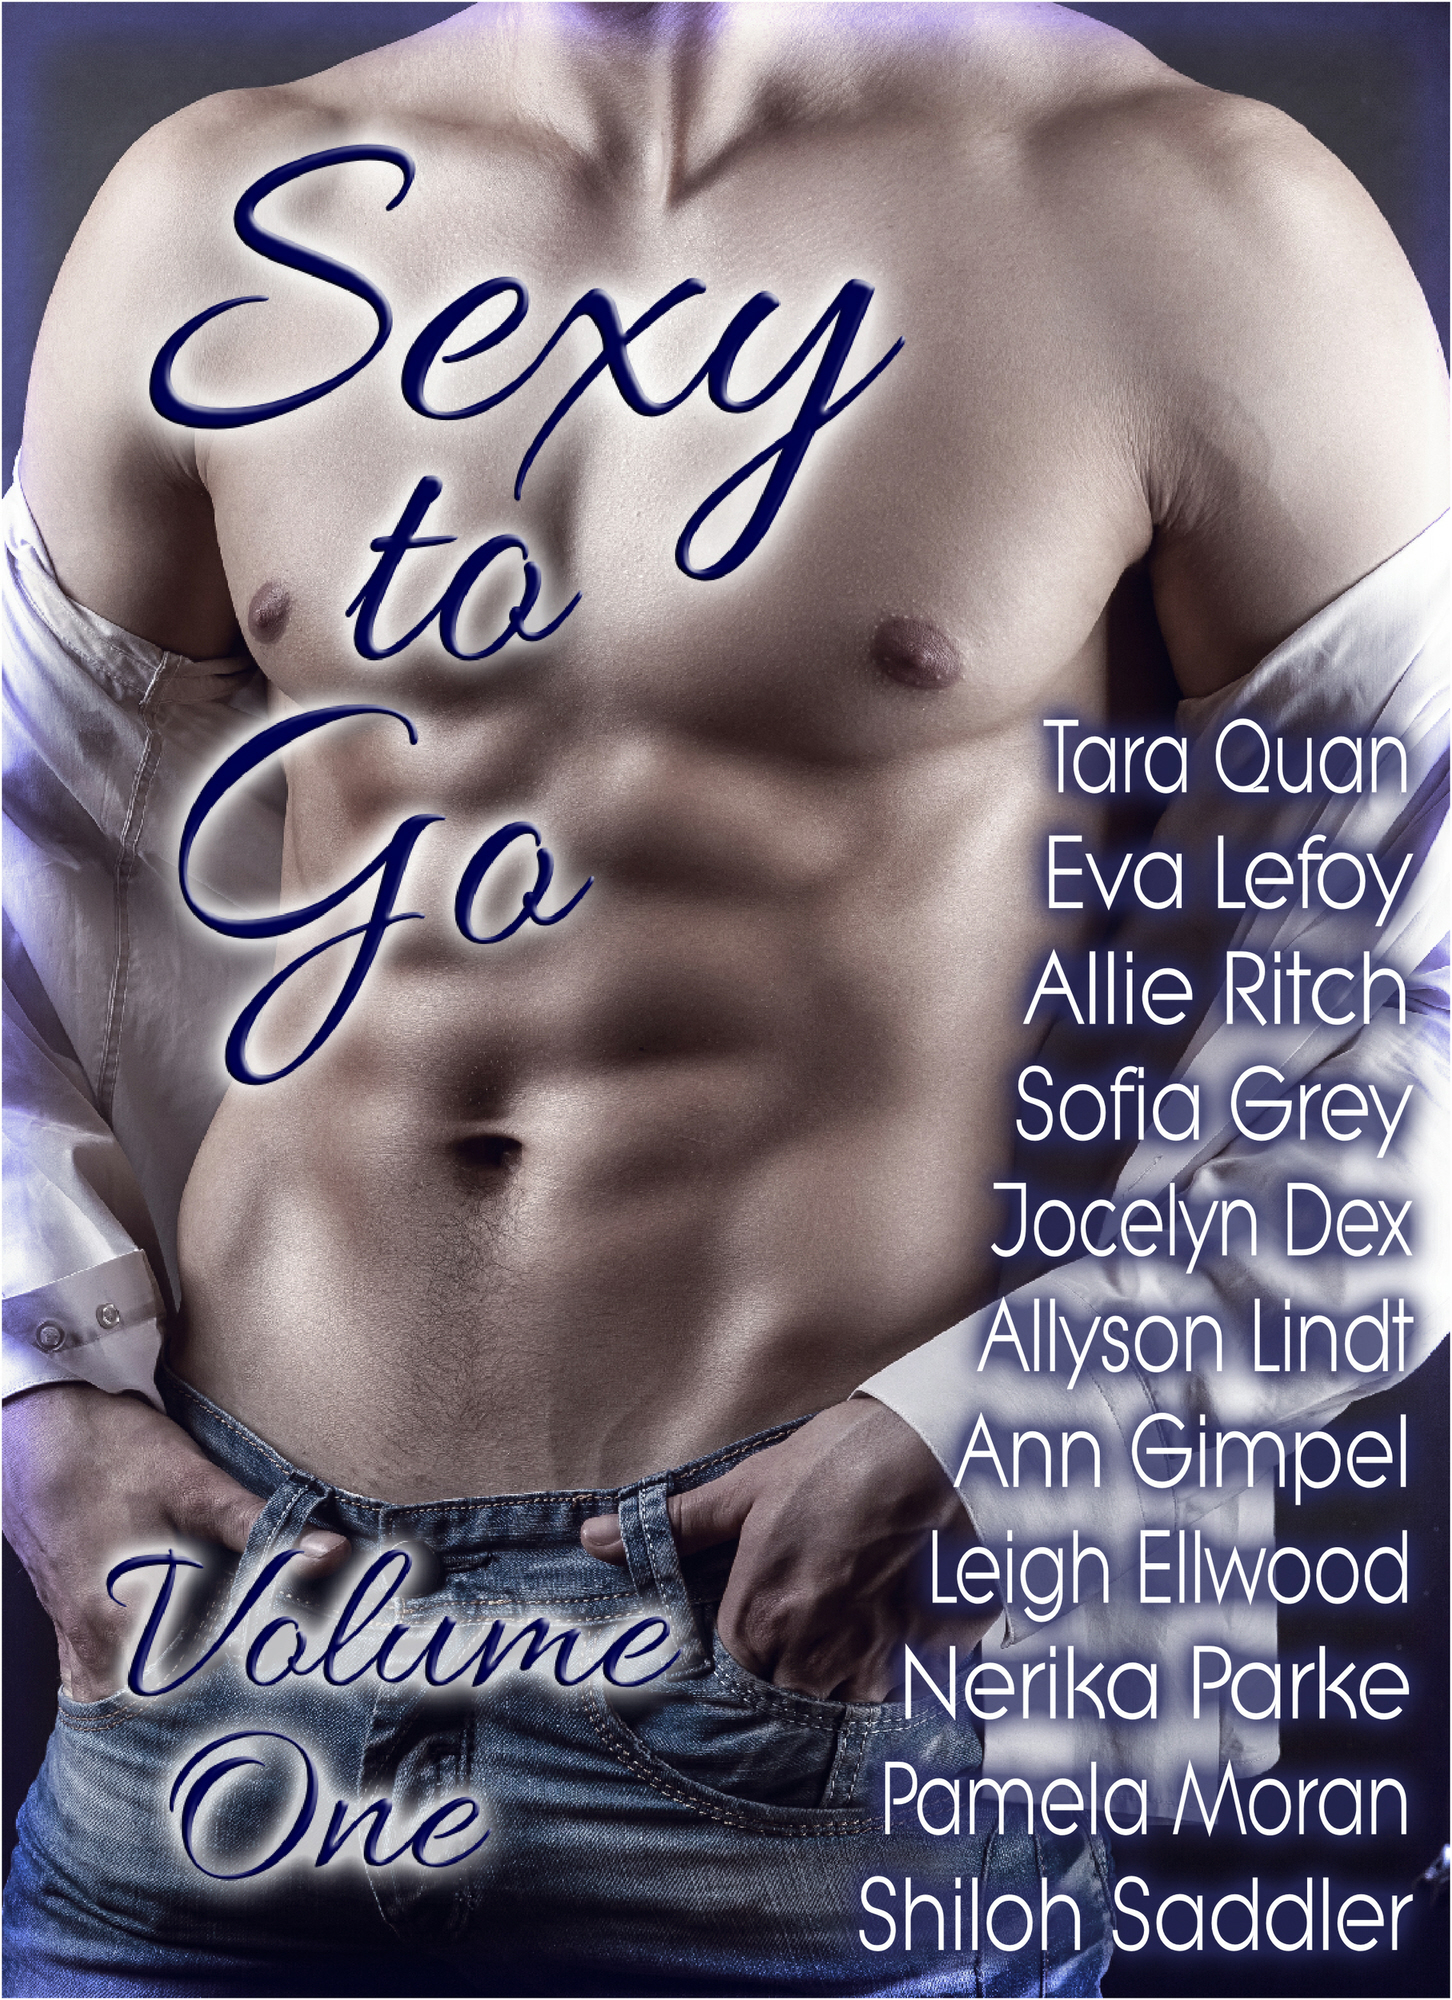 Sexy to Go One cover small (1).jpg